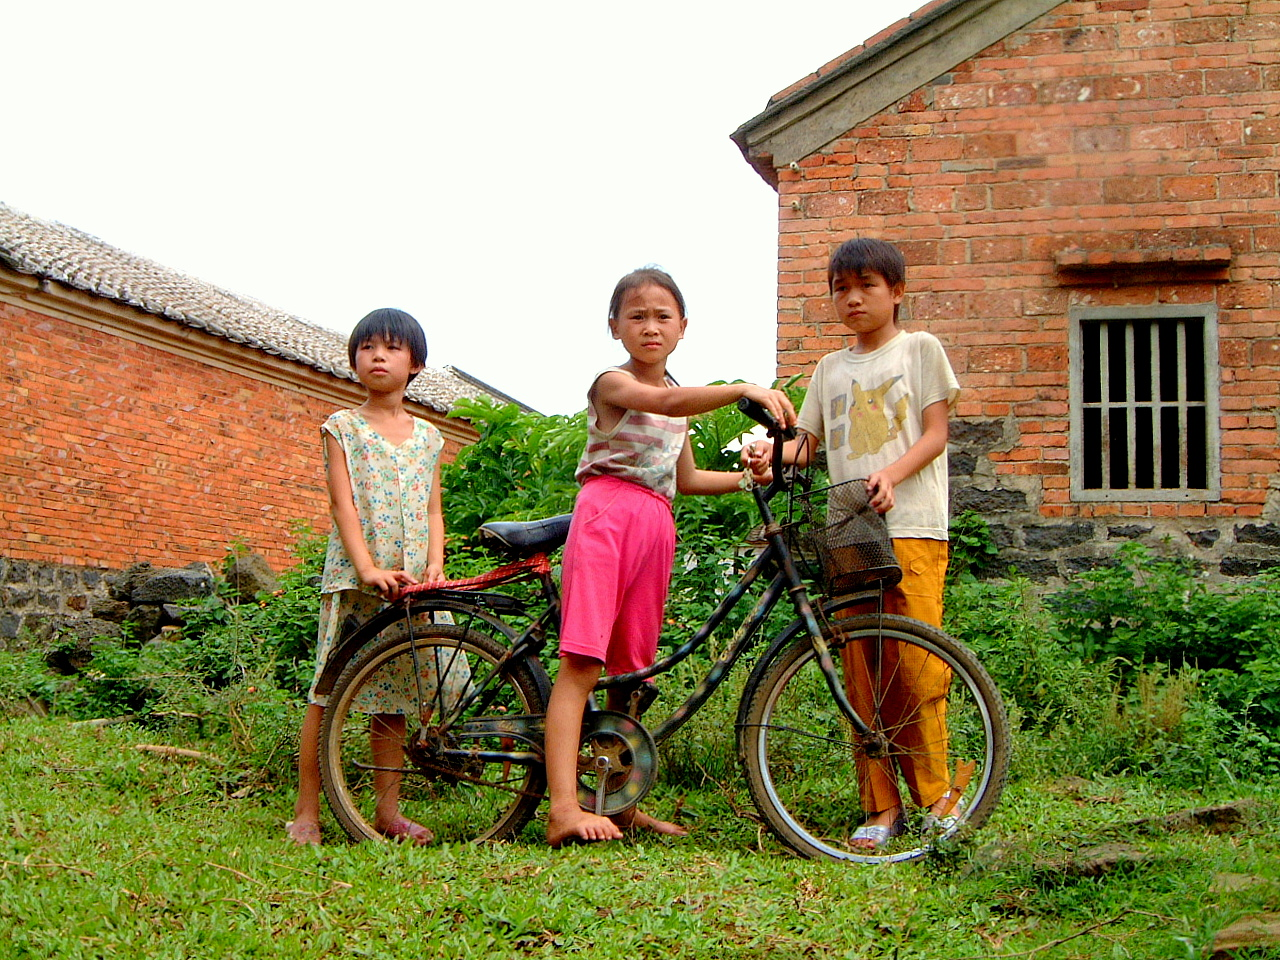 Children in Guangdong, China